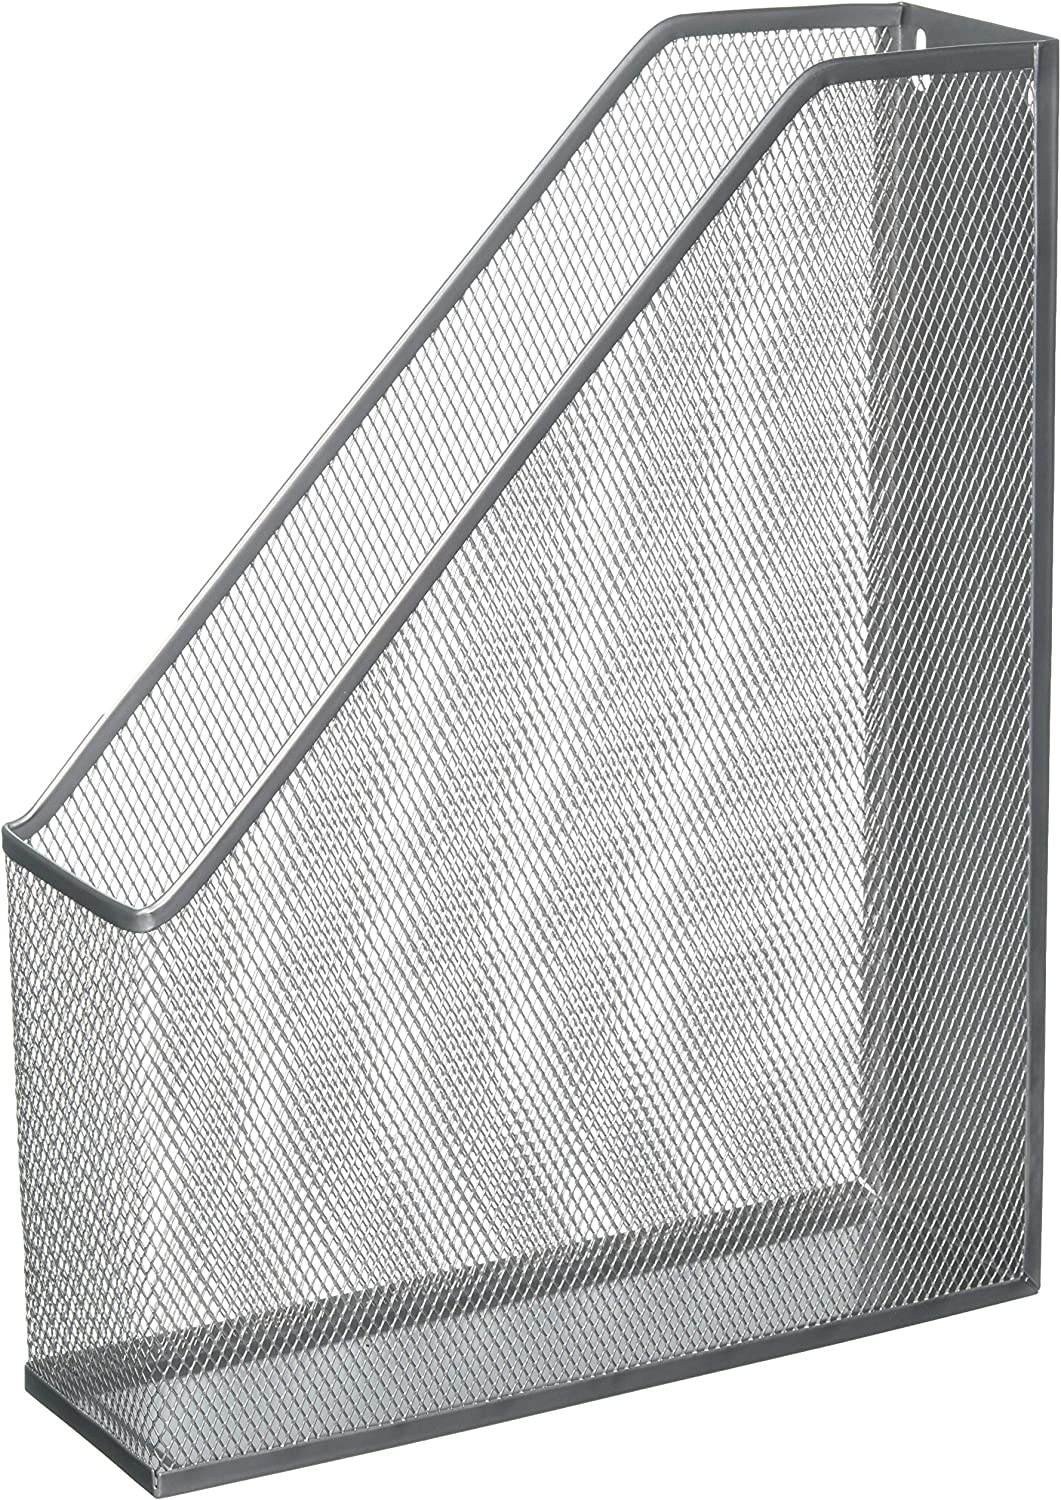 YBM Home Steel Mesh Wall Magazine File Holder for Home & Office Organization, Serves as a Magazine Rack, Desk Organizer, Letter and Mail Bin, Holds Up to 20 Magazines - Silver, 1111